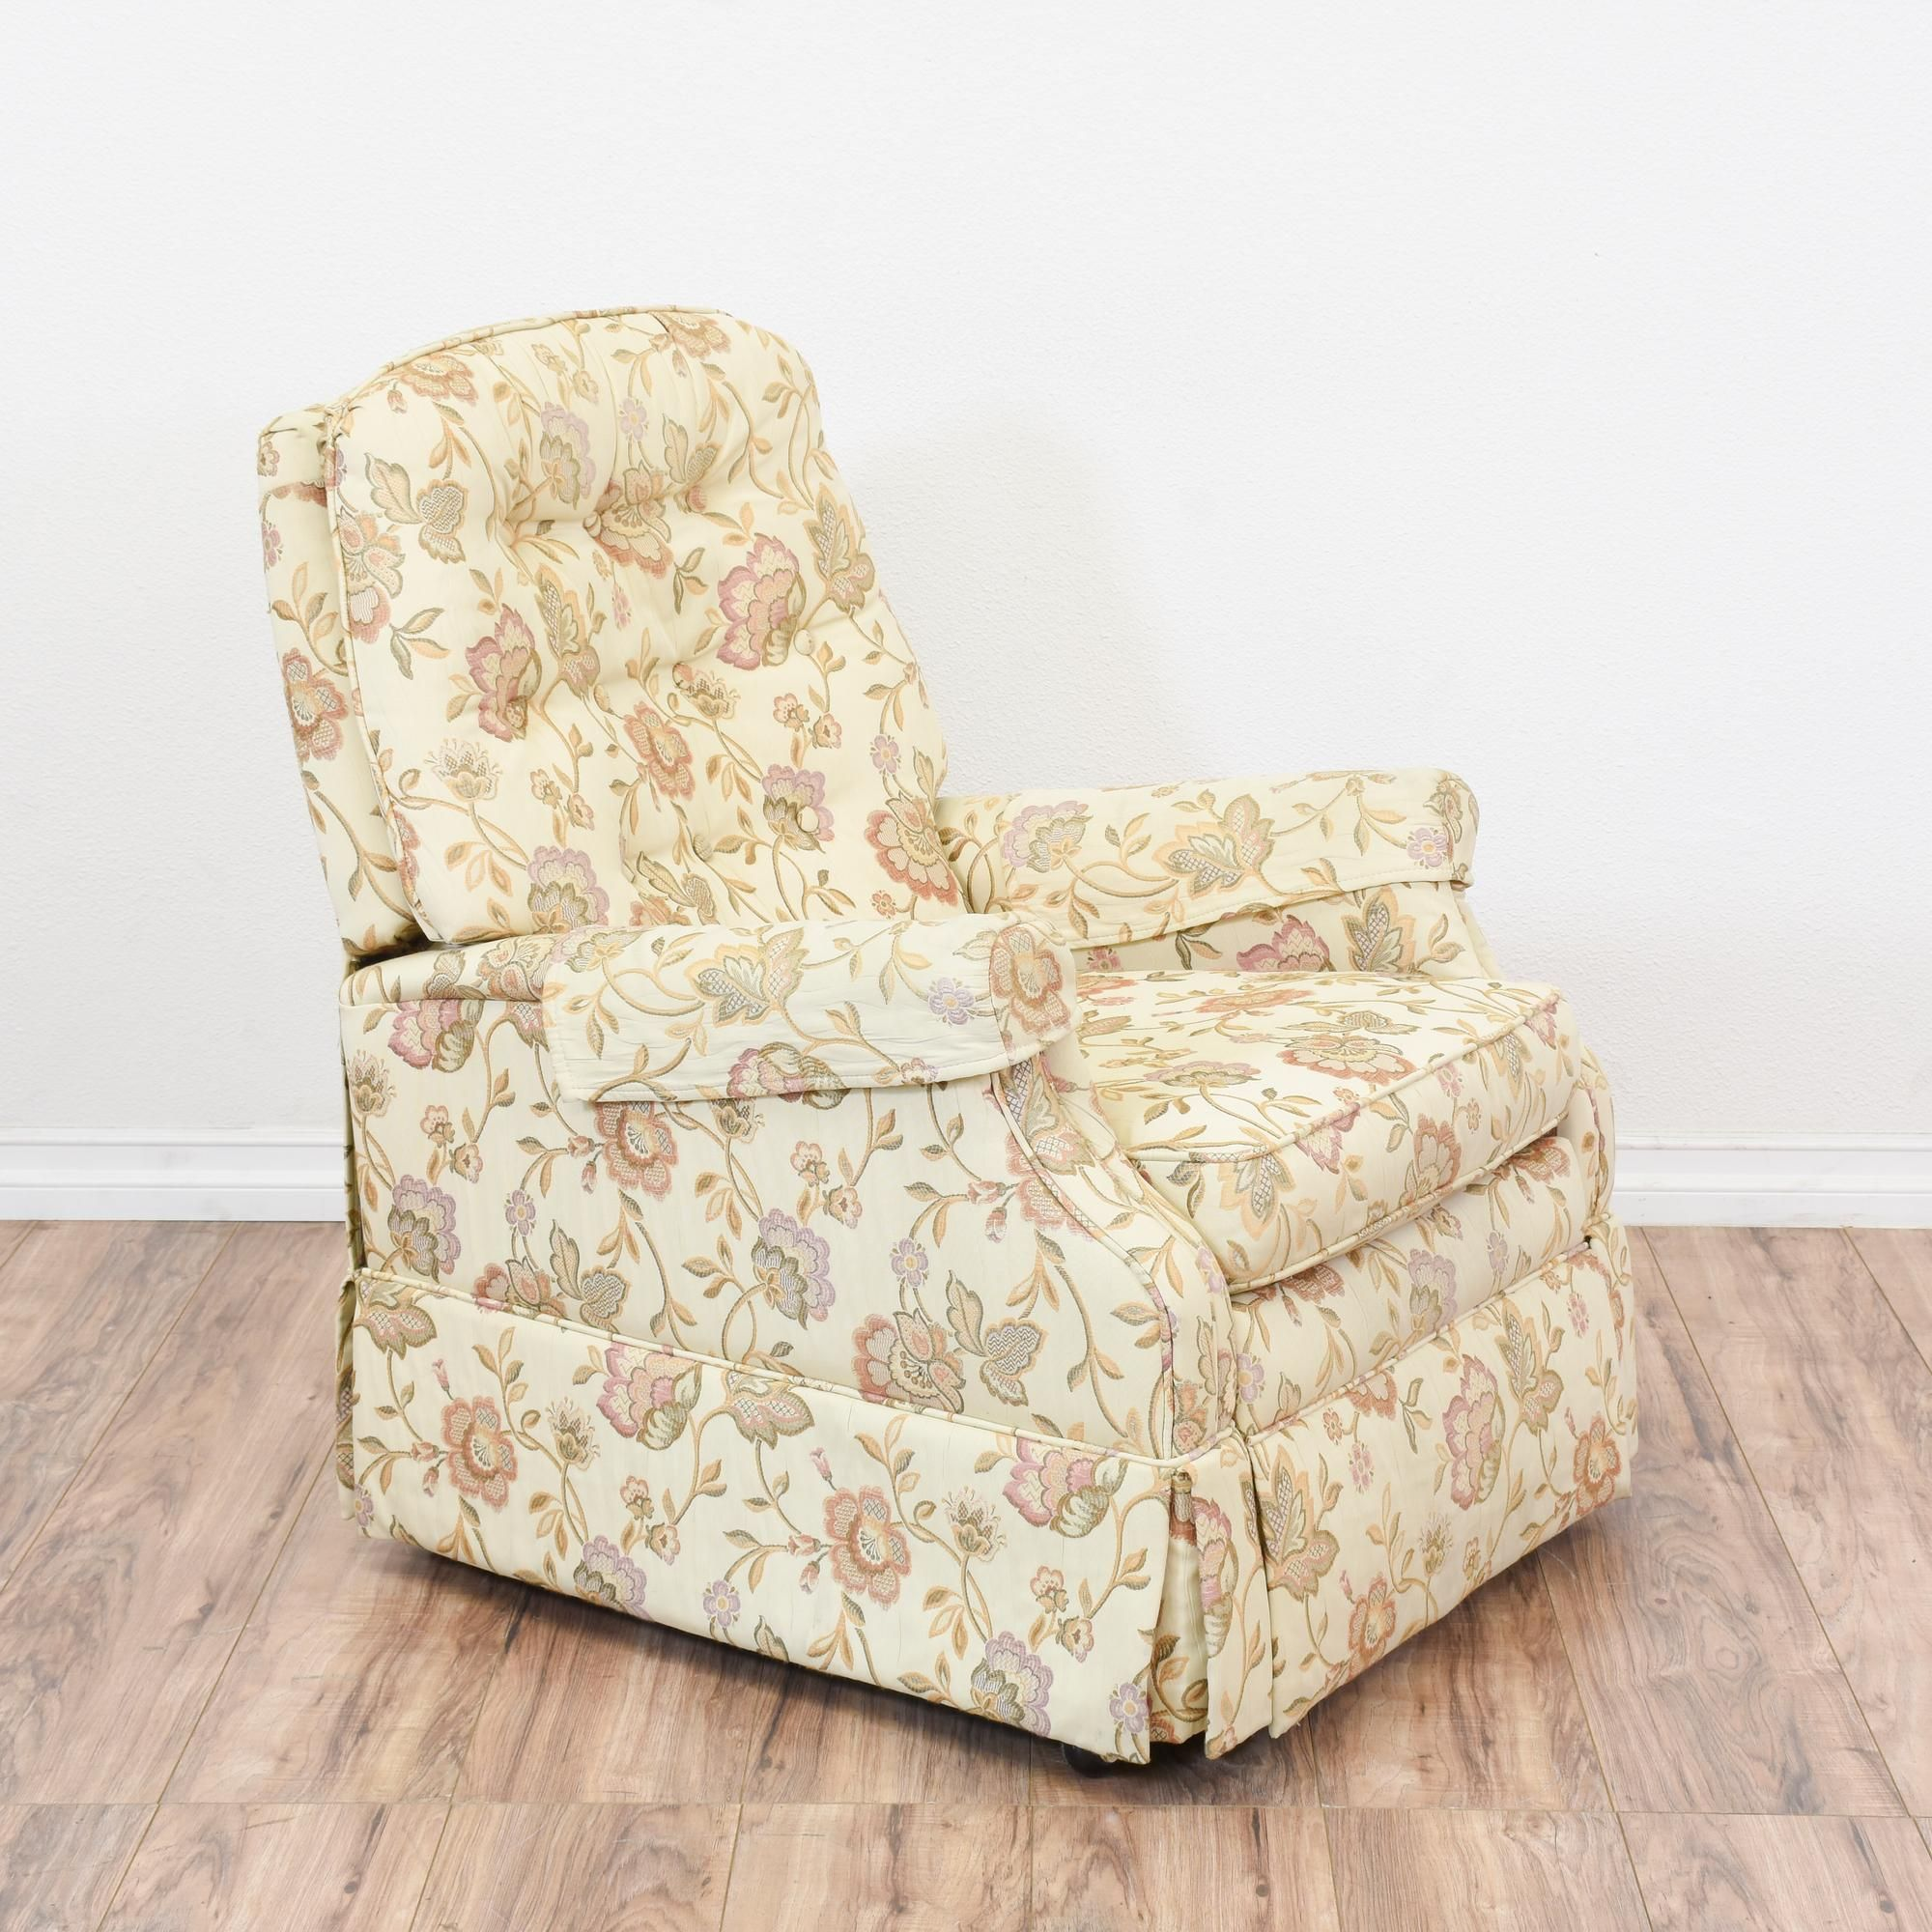 Armchair Sleeves Rubber Chair Feet Floor Protectors This Bradington Young Recliner Is Upholstered In A Durable Cream White With Floral